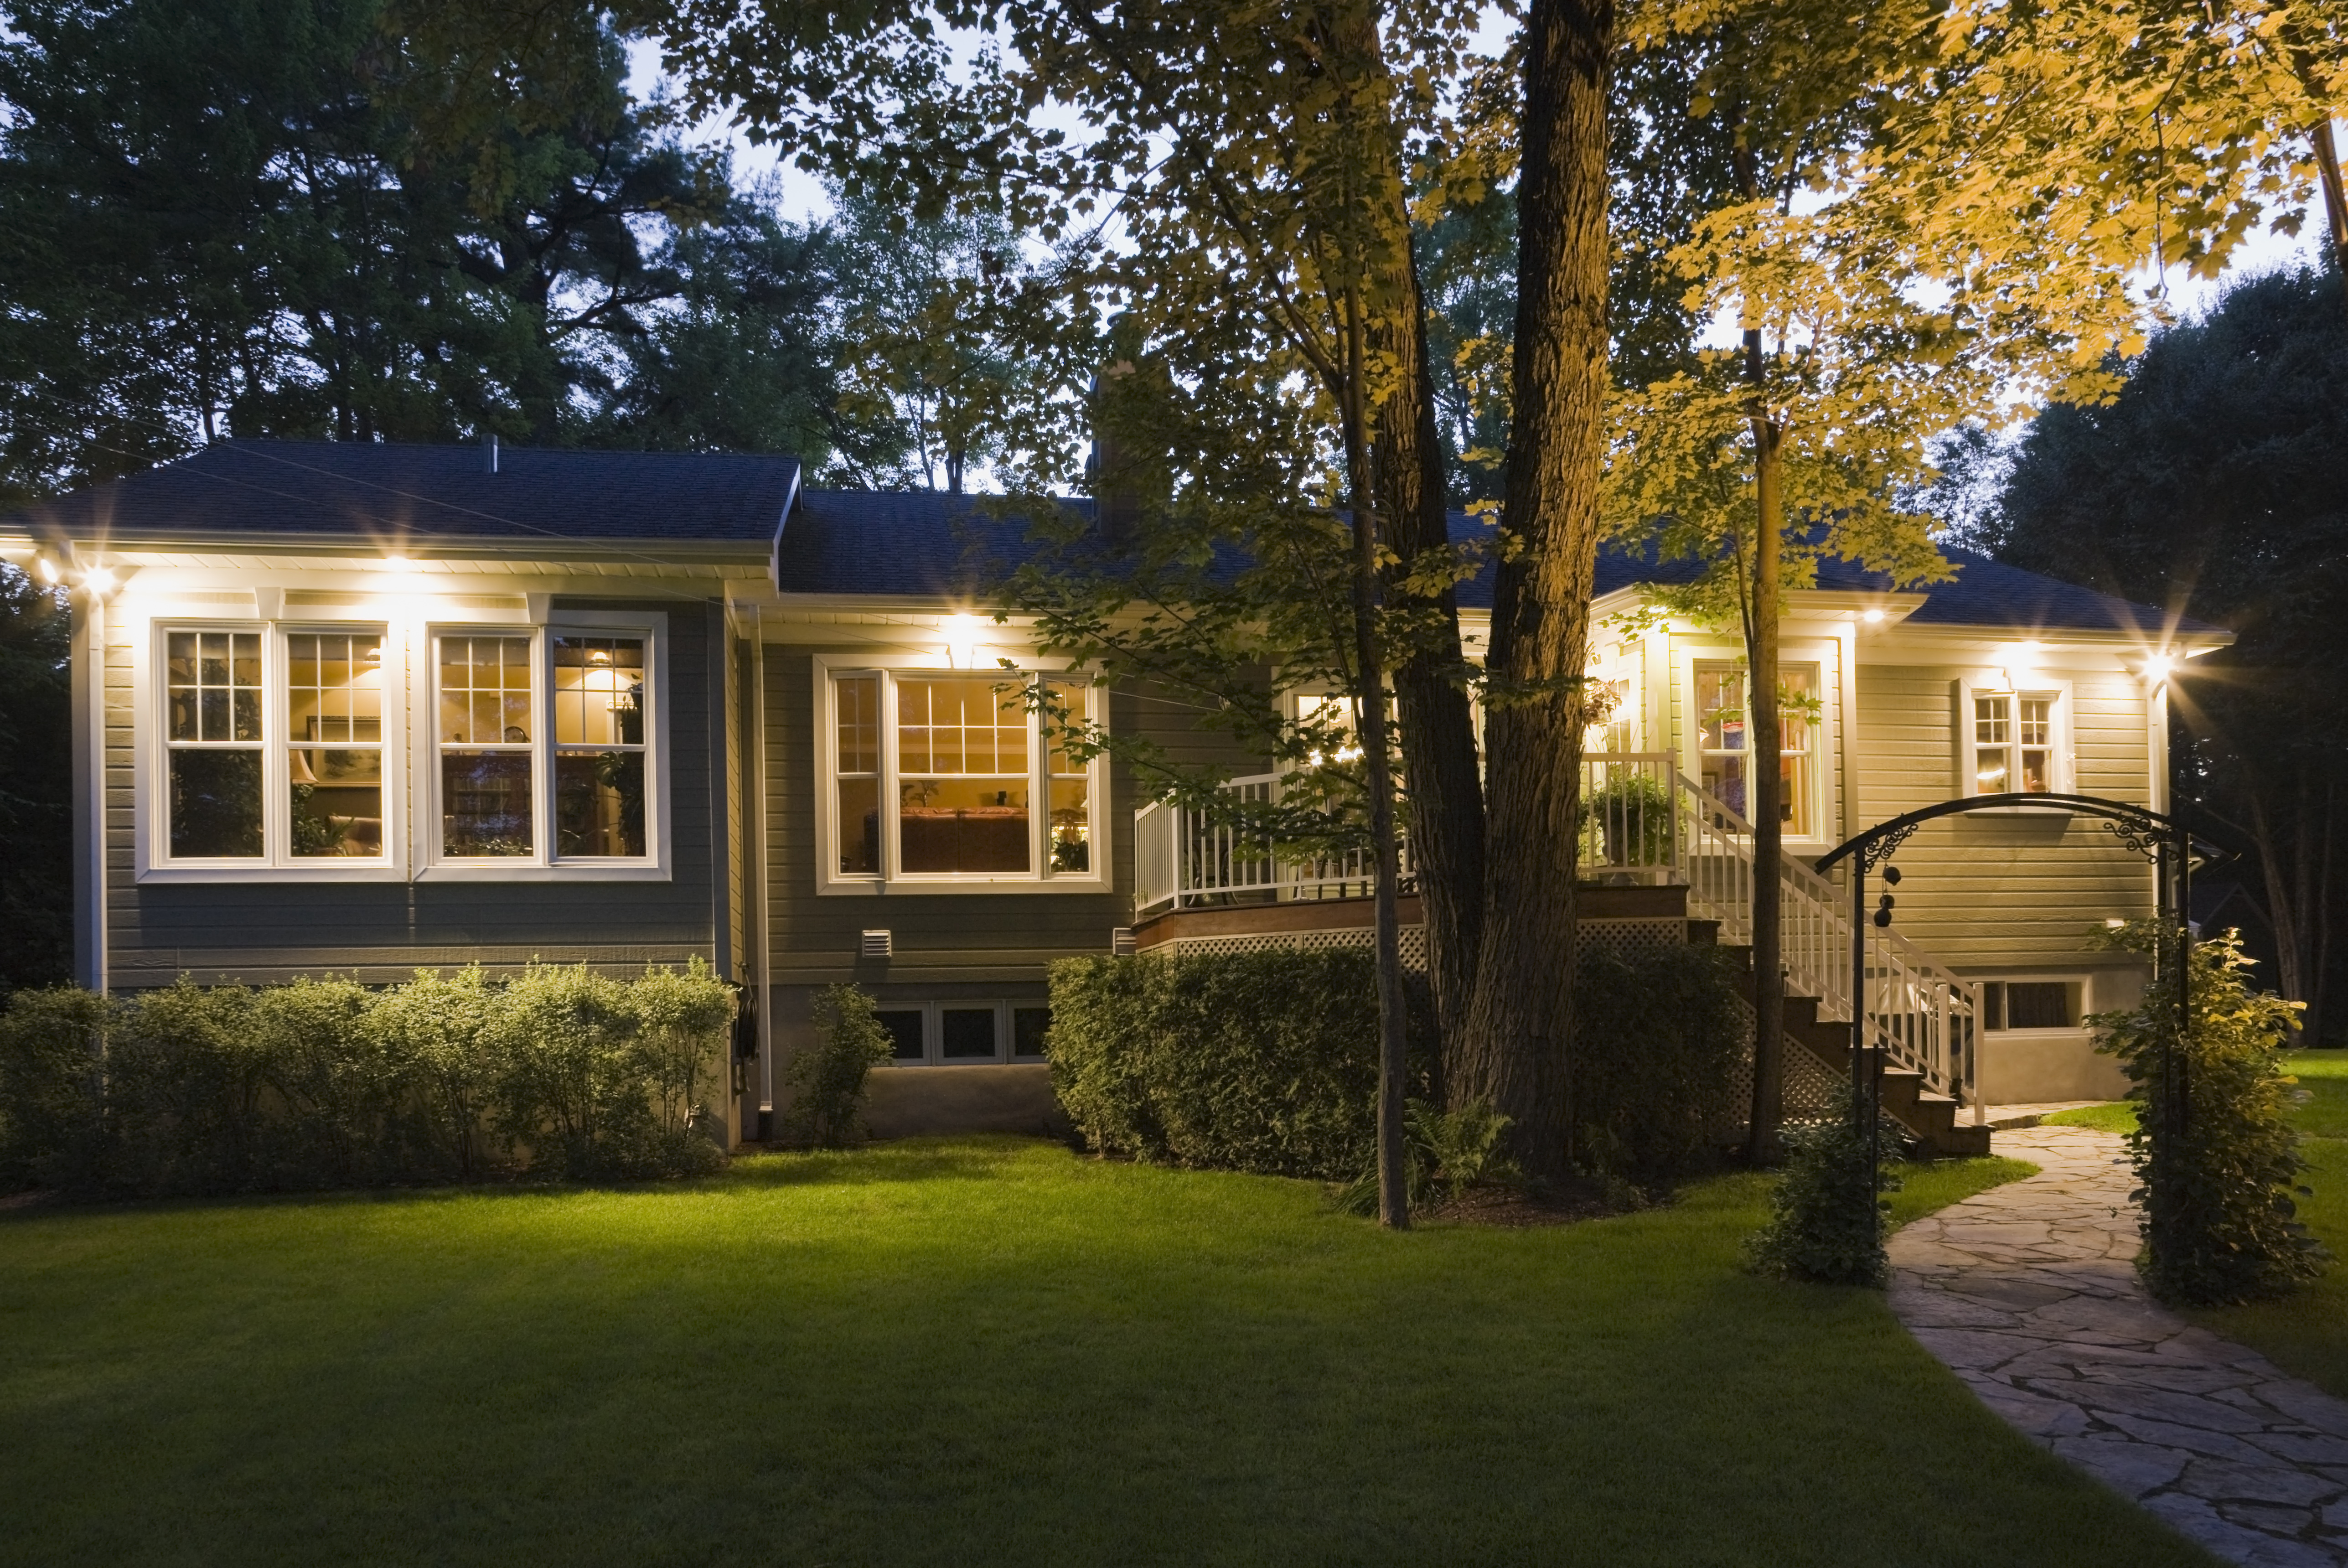 How to Activate and Deactivate Motion Sensor Lights | Hunker